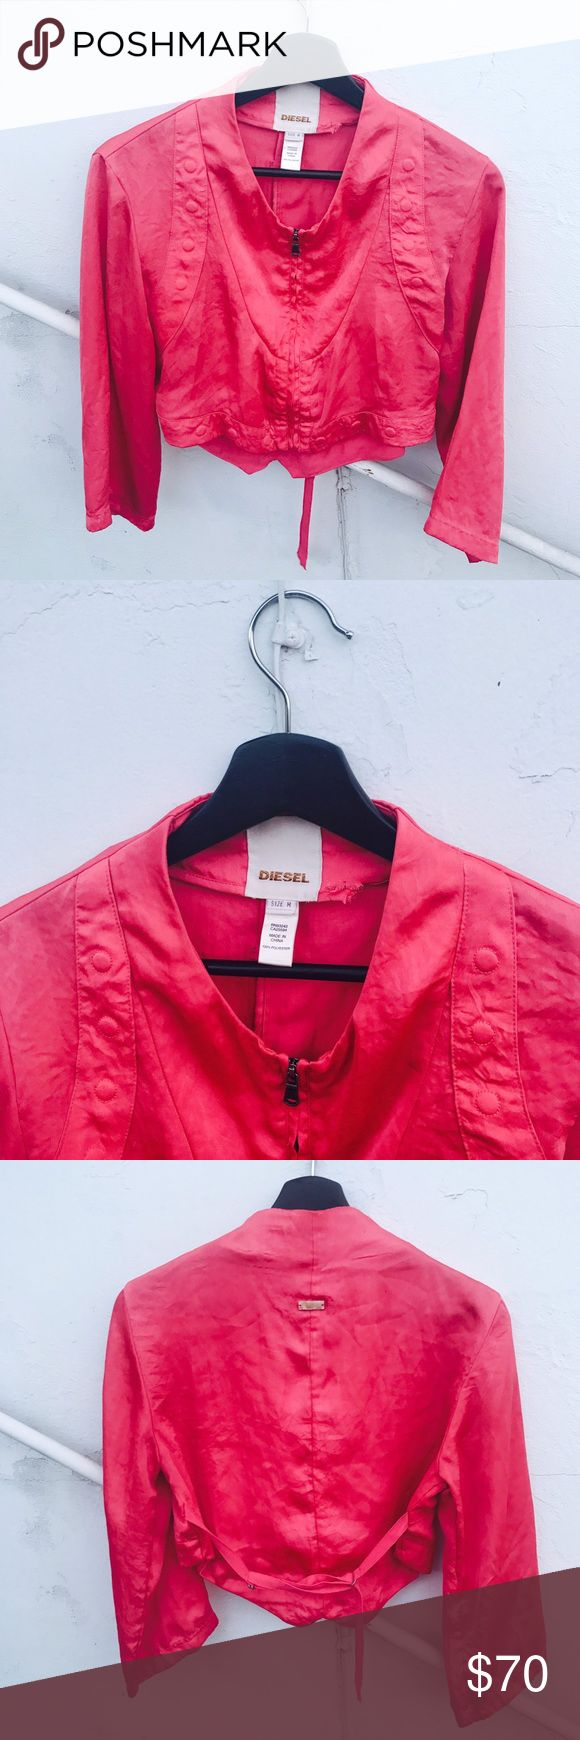 DIESEL salmon pink jacket Zippered in front and only a minor tear on inner neckline (not visible from the back) Diesel Jackets & Coats Blazers